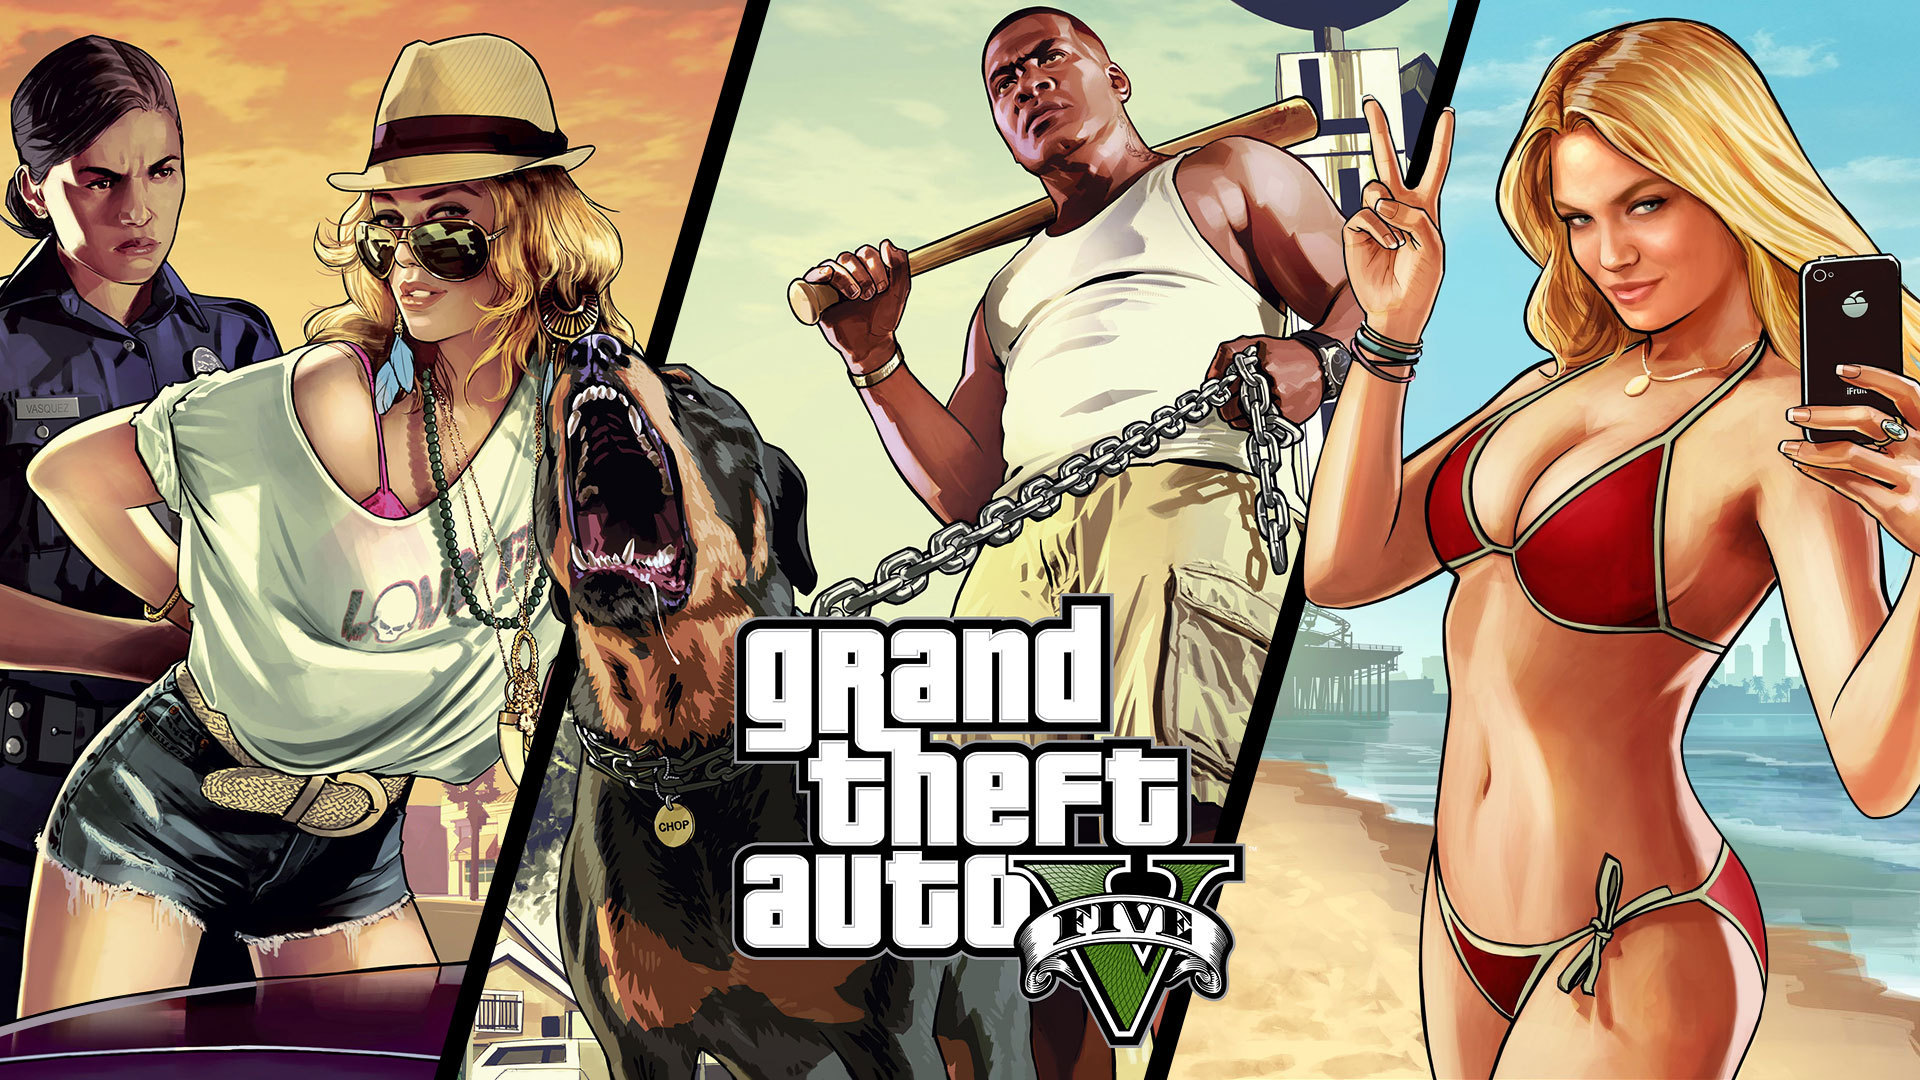 gta 5 wallpaper background, wallpapers